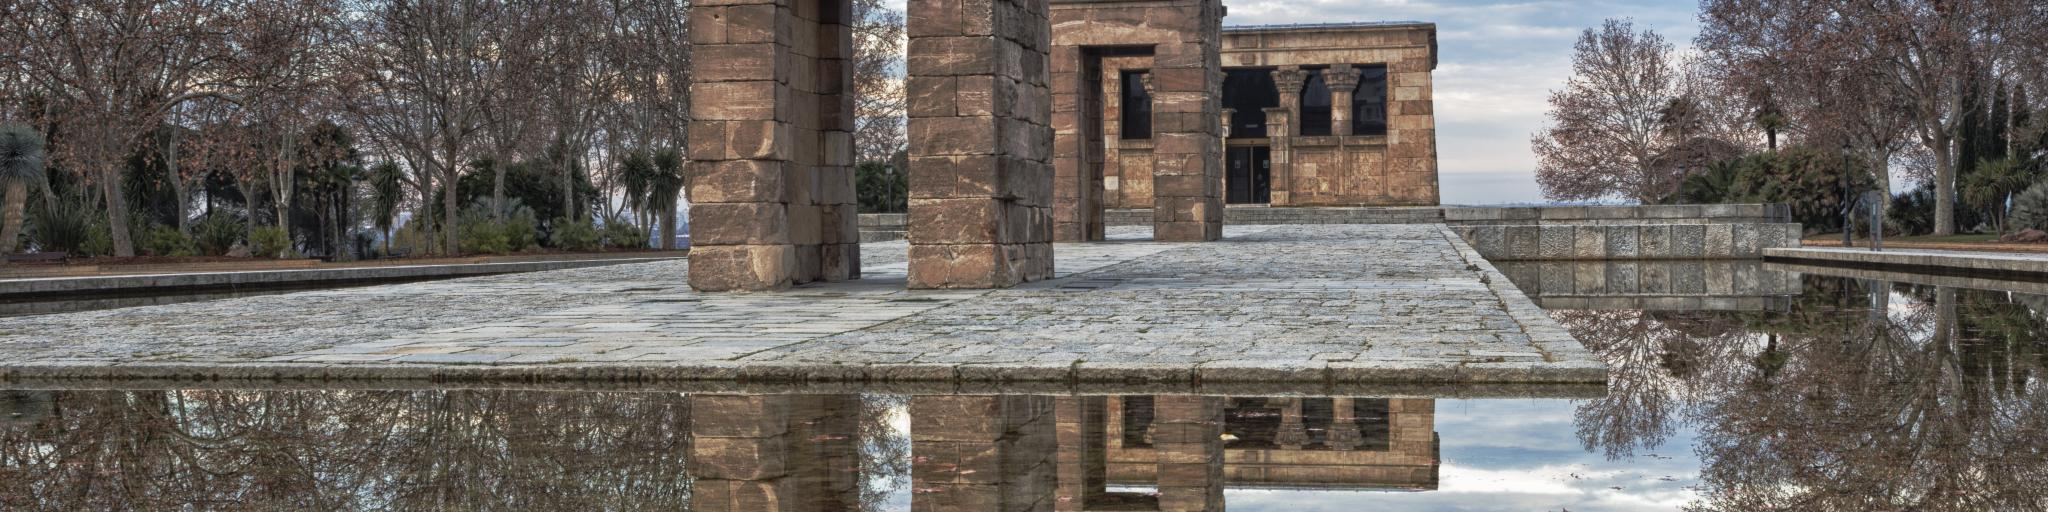 Templo de Debod and its reflection in water